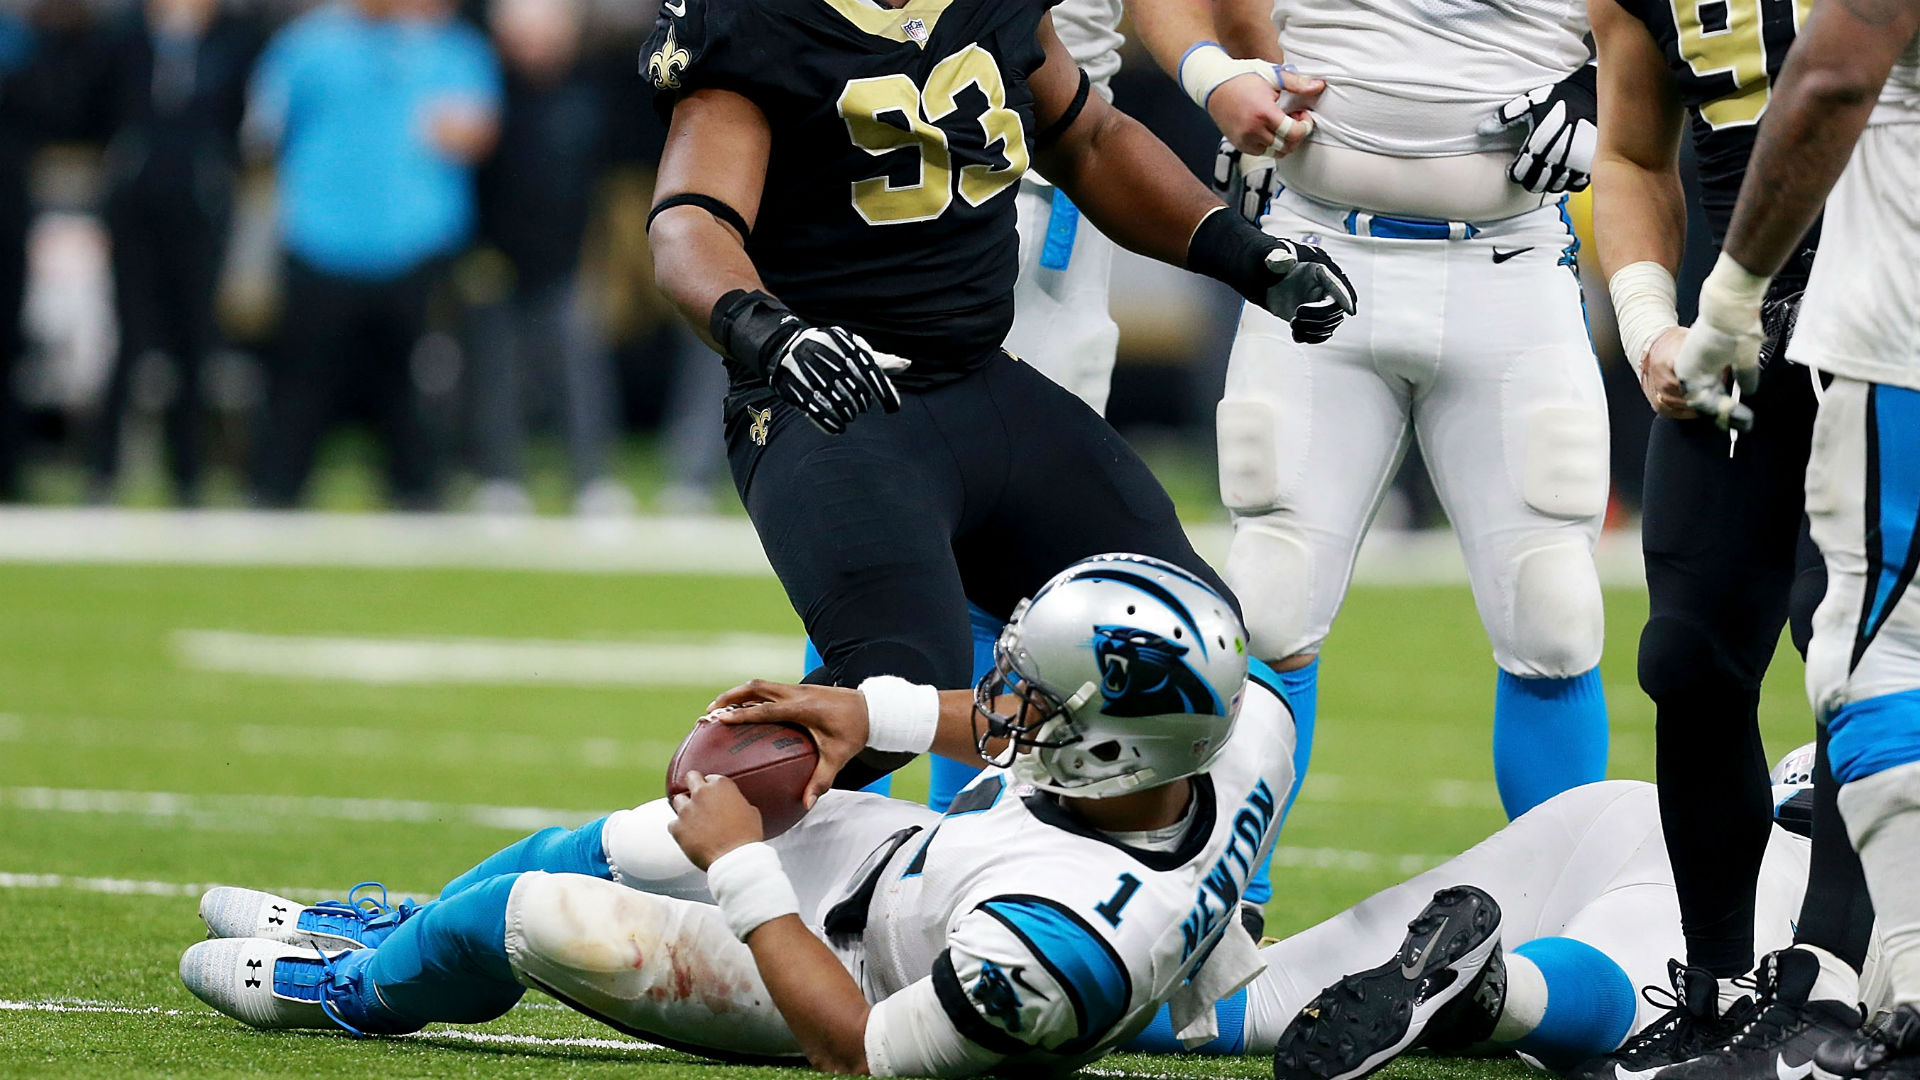 New Orleans Saints vs. Carolina Panthers: 3 key matchups